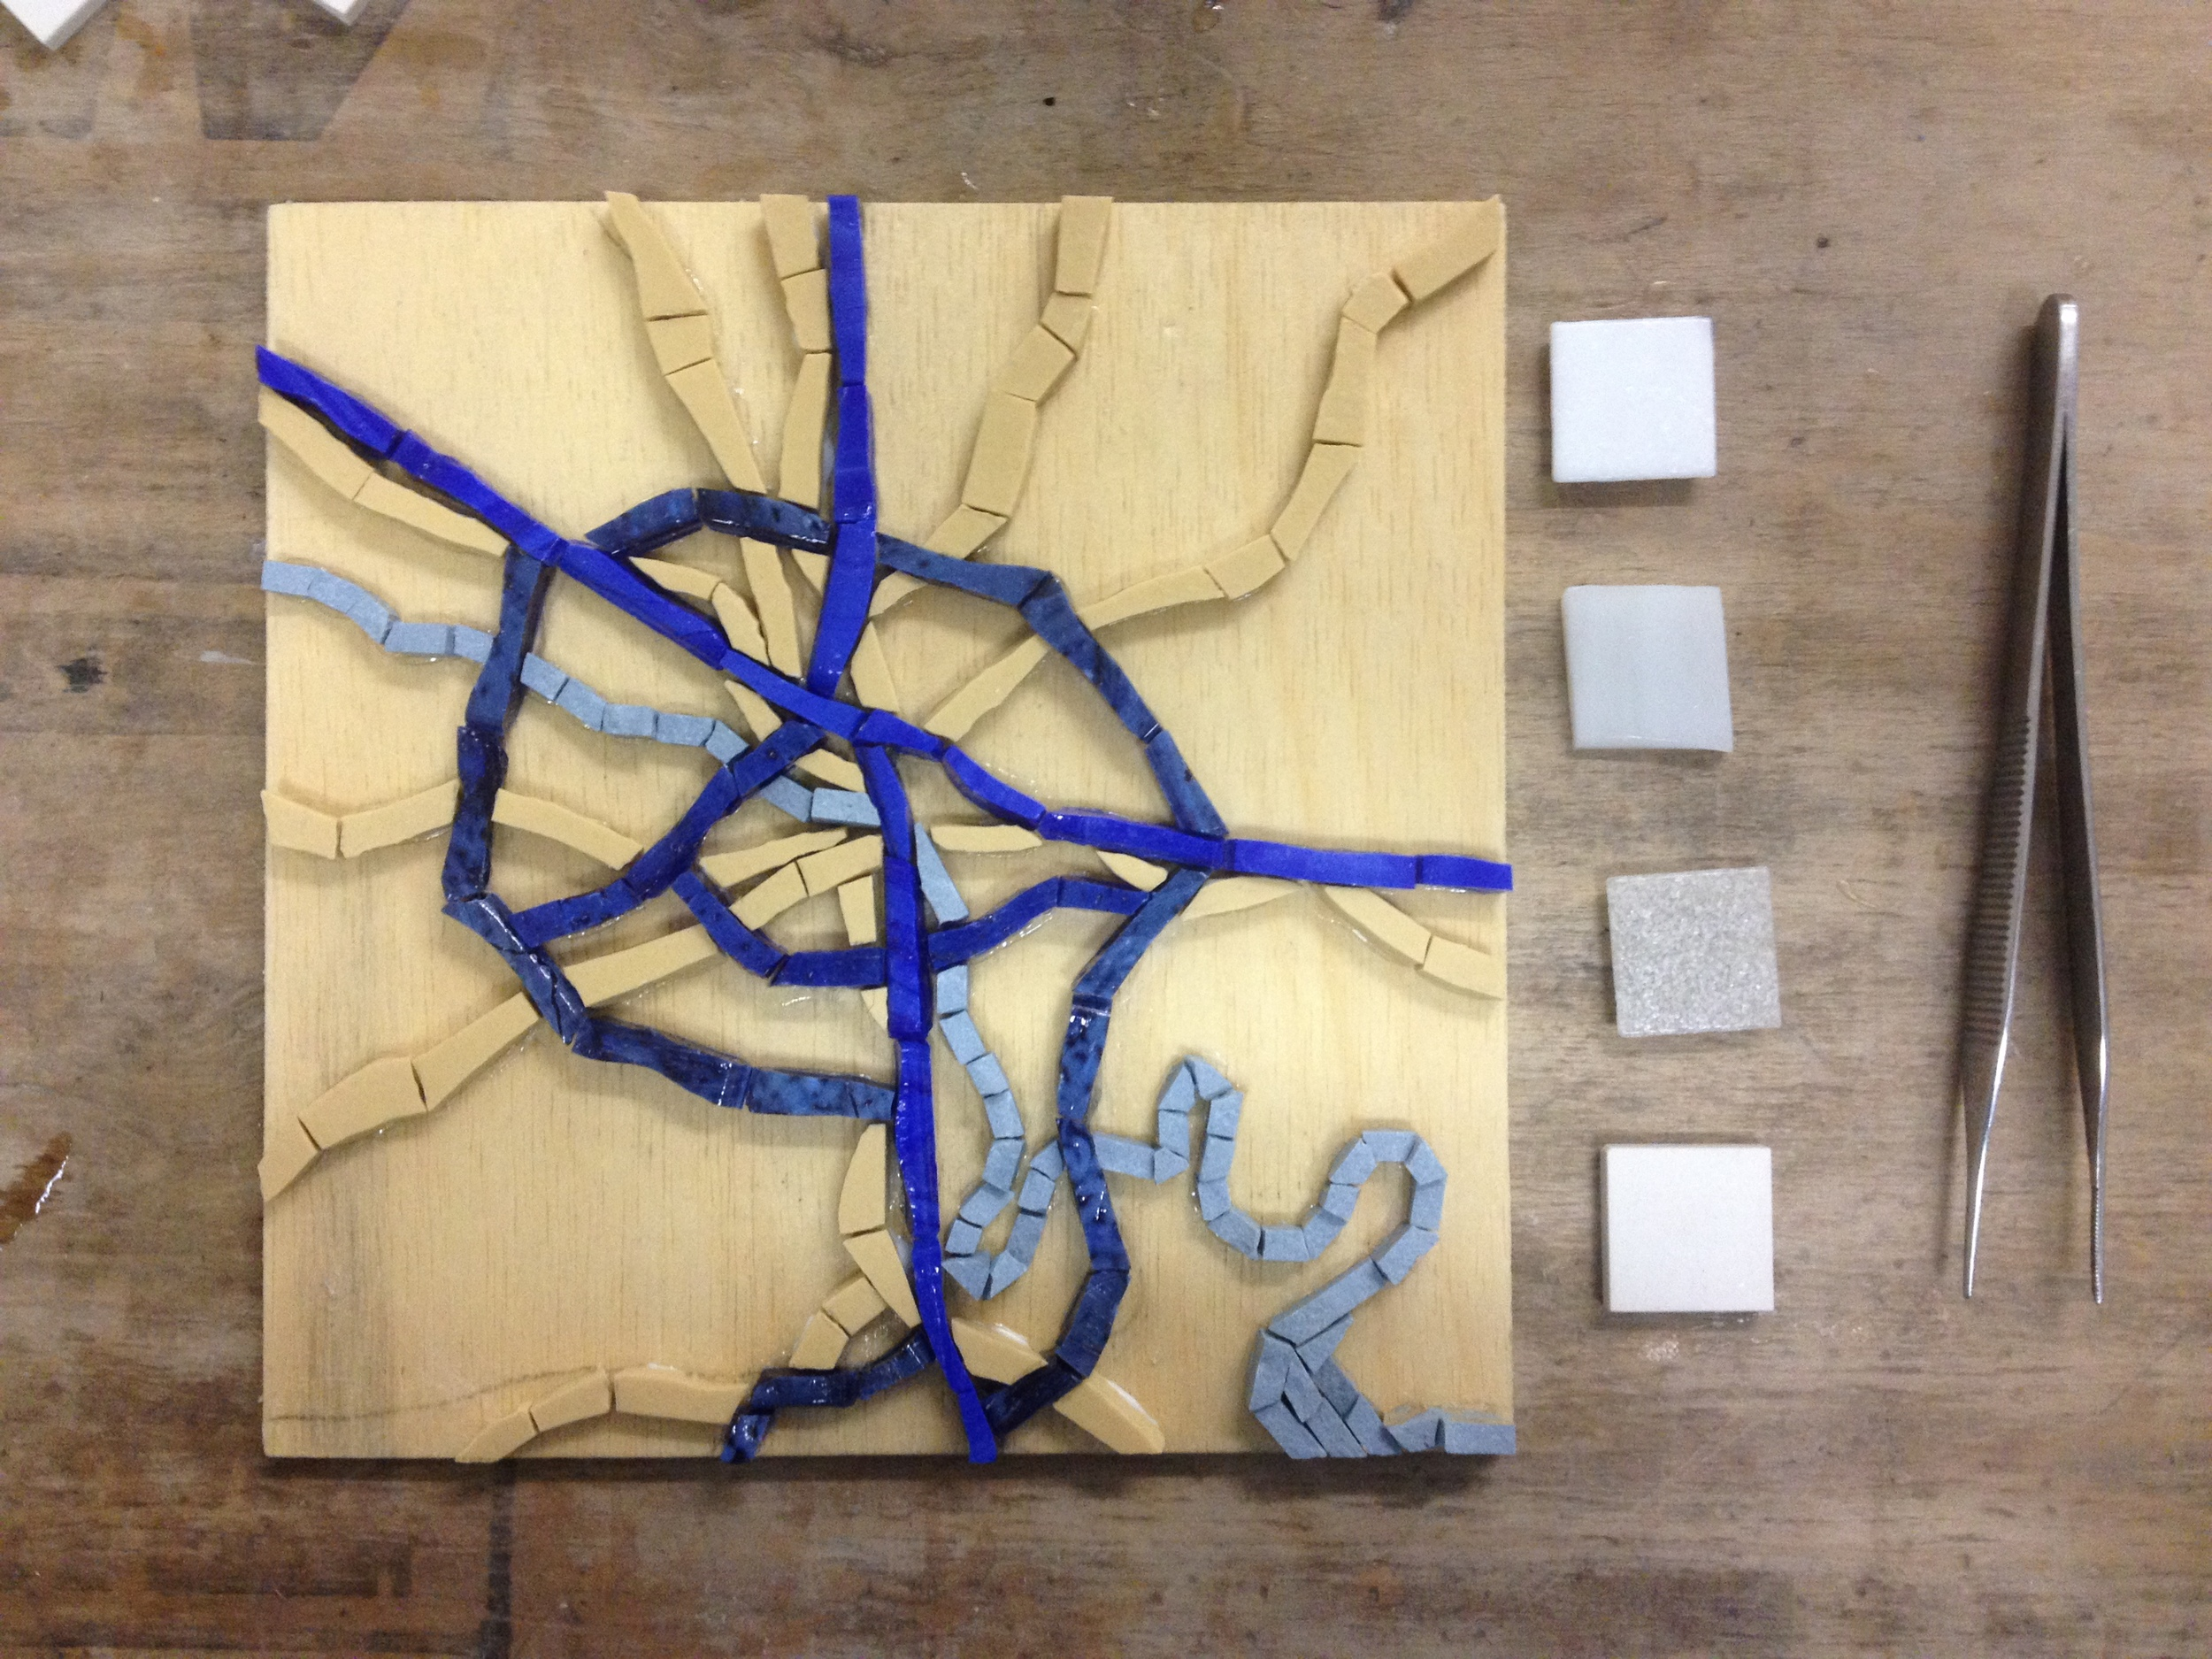 The first piece in the series is a roadmap of the metropolitan Richmond region. I wanted to create a look somewhere between the Google map we know today, and a classic road map.The four tiles on the right are background color options. The top three are glass. I ended up going with the unglazed porcelain at the bottom.